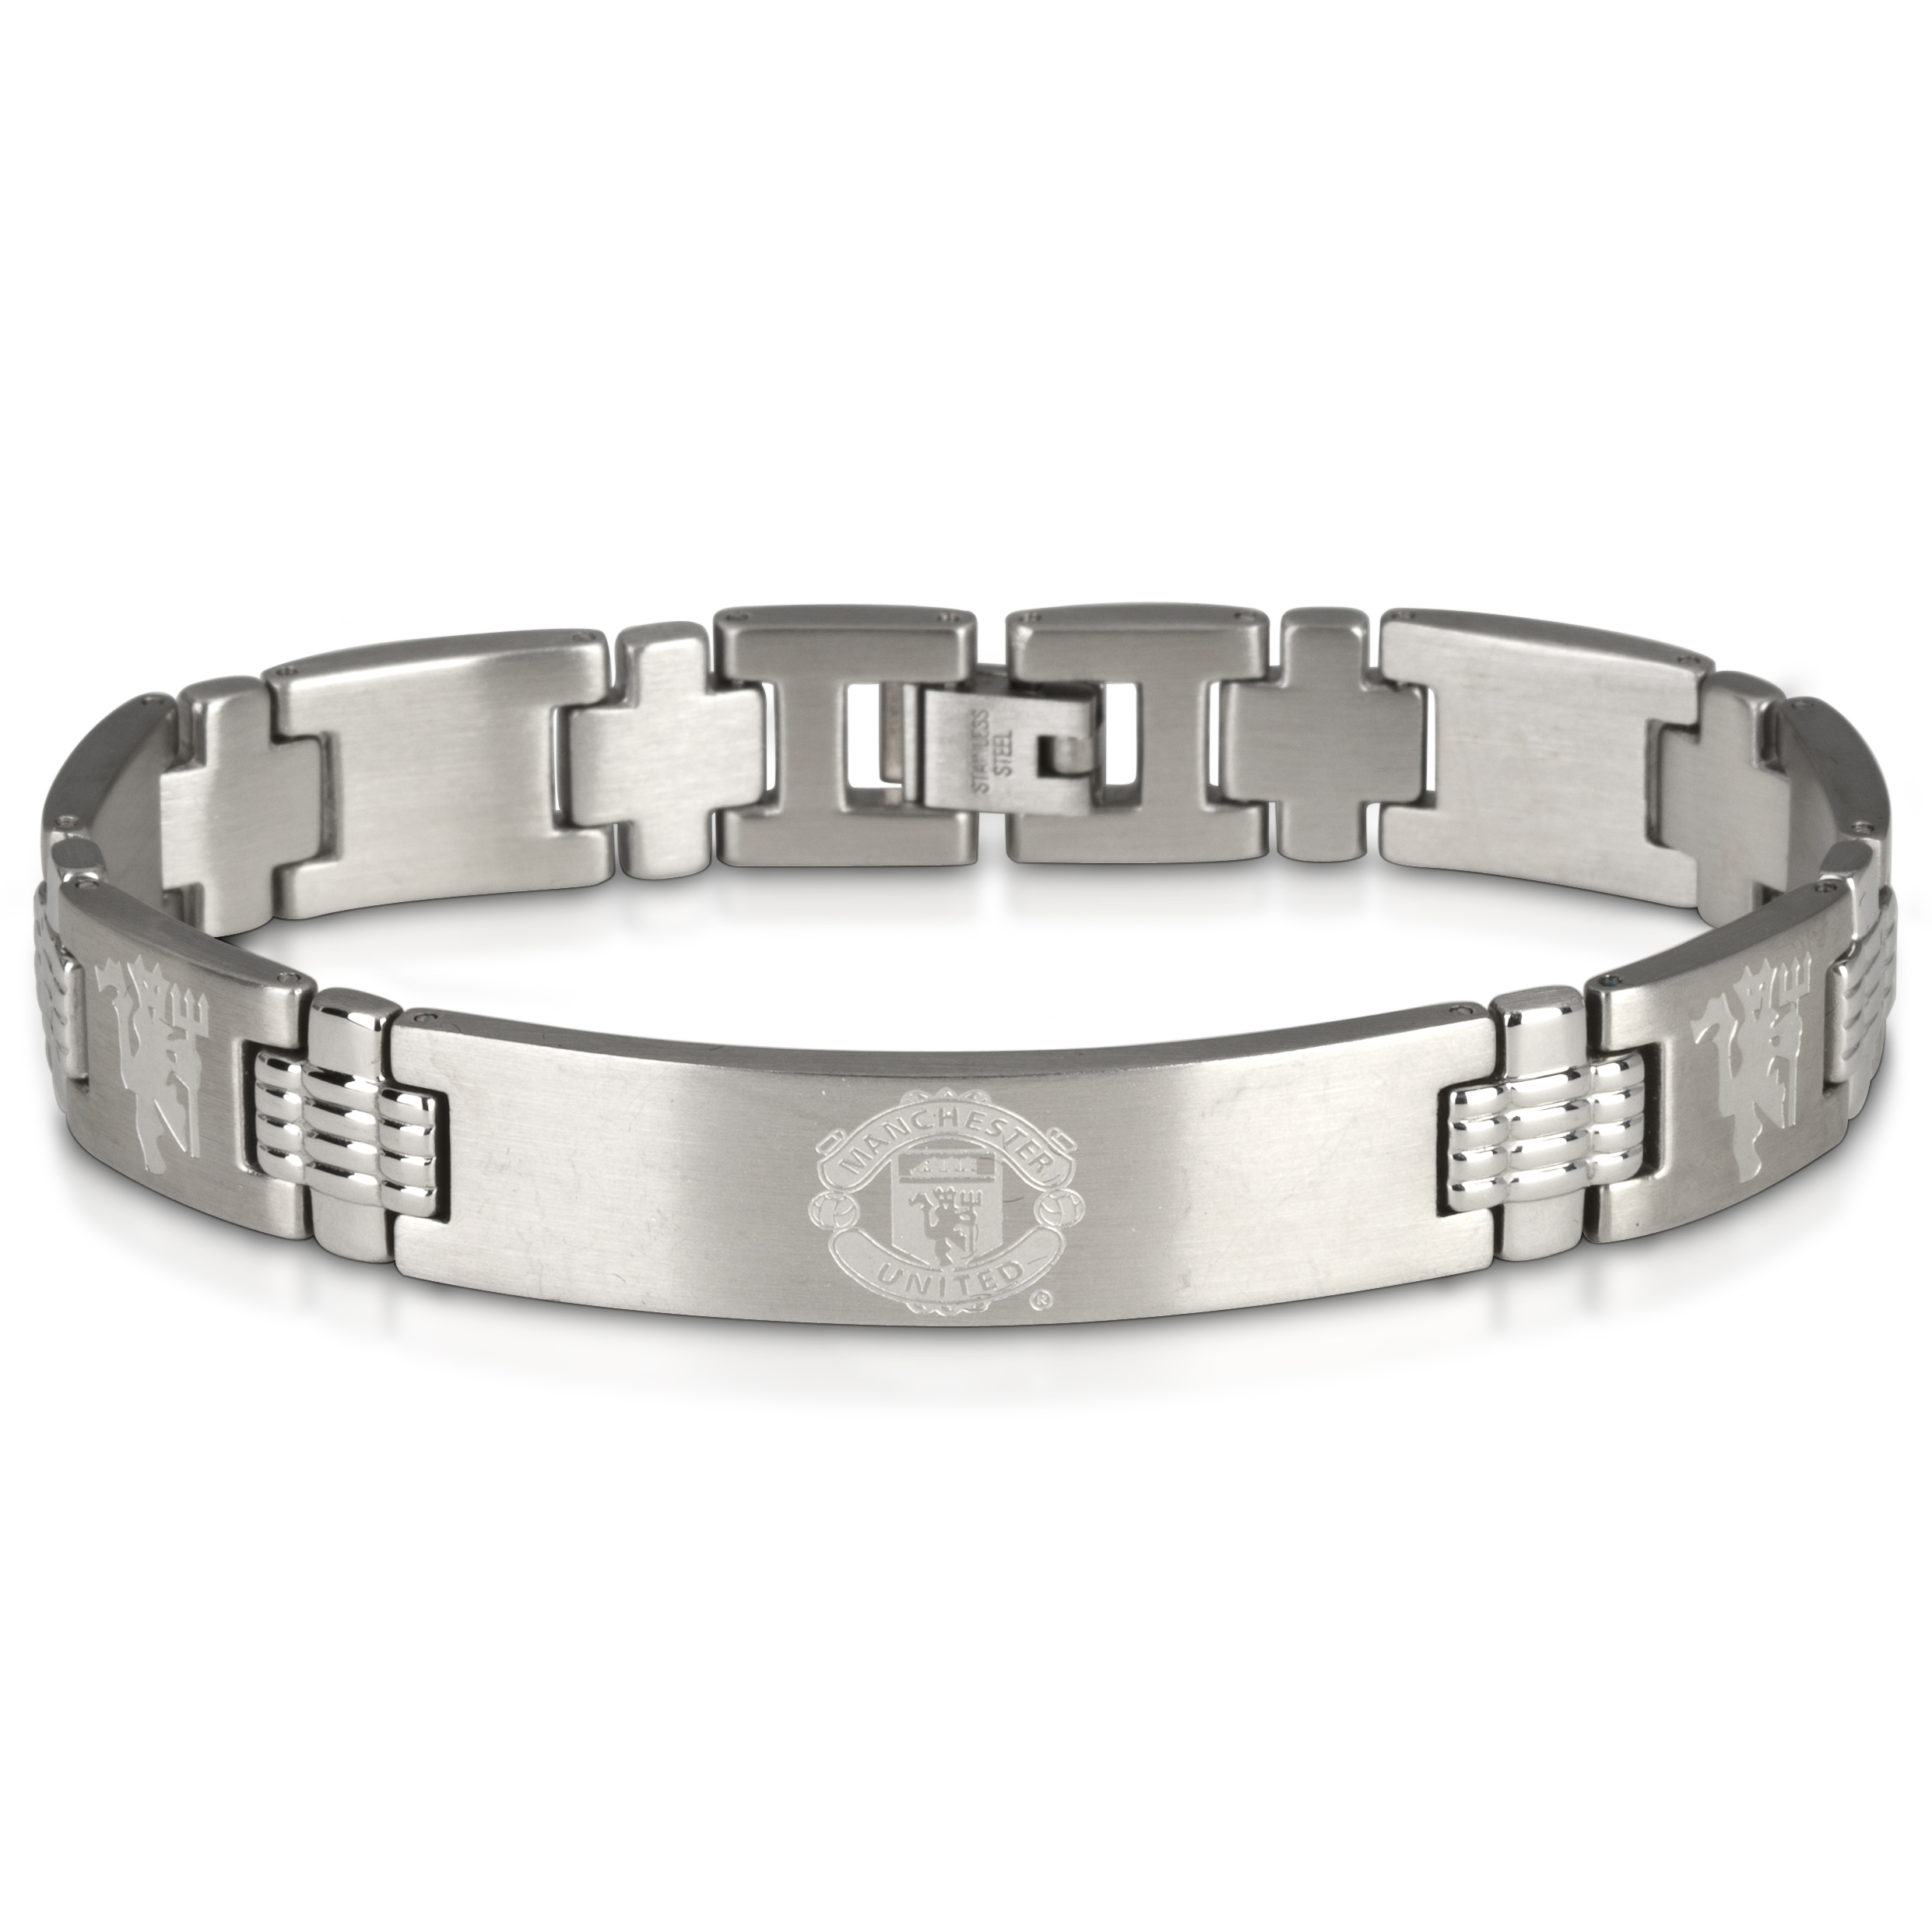 Manchester United Crest with Multi Devil Bracelet - Stainless Steel